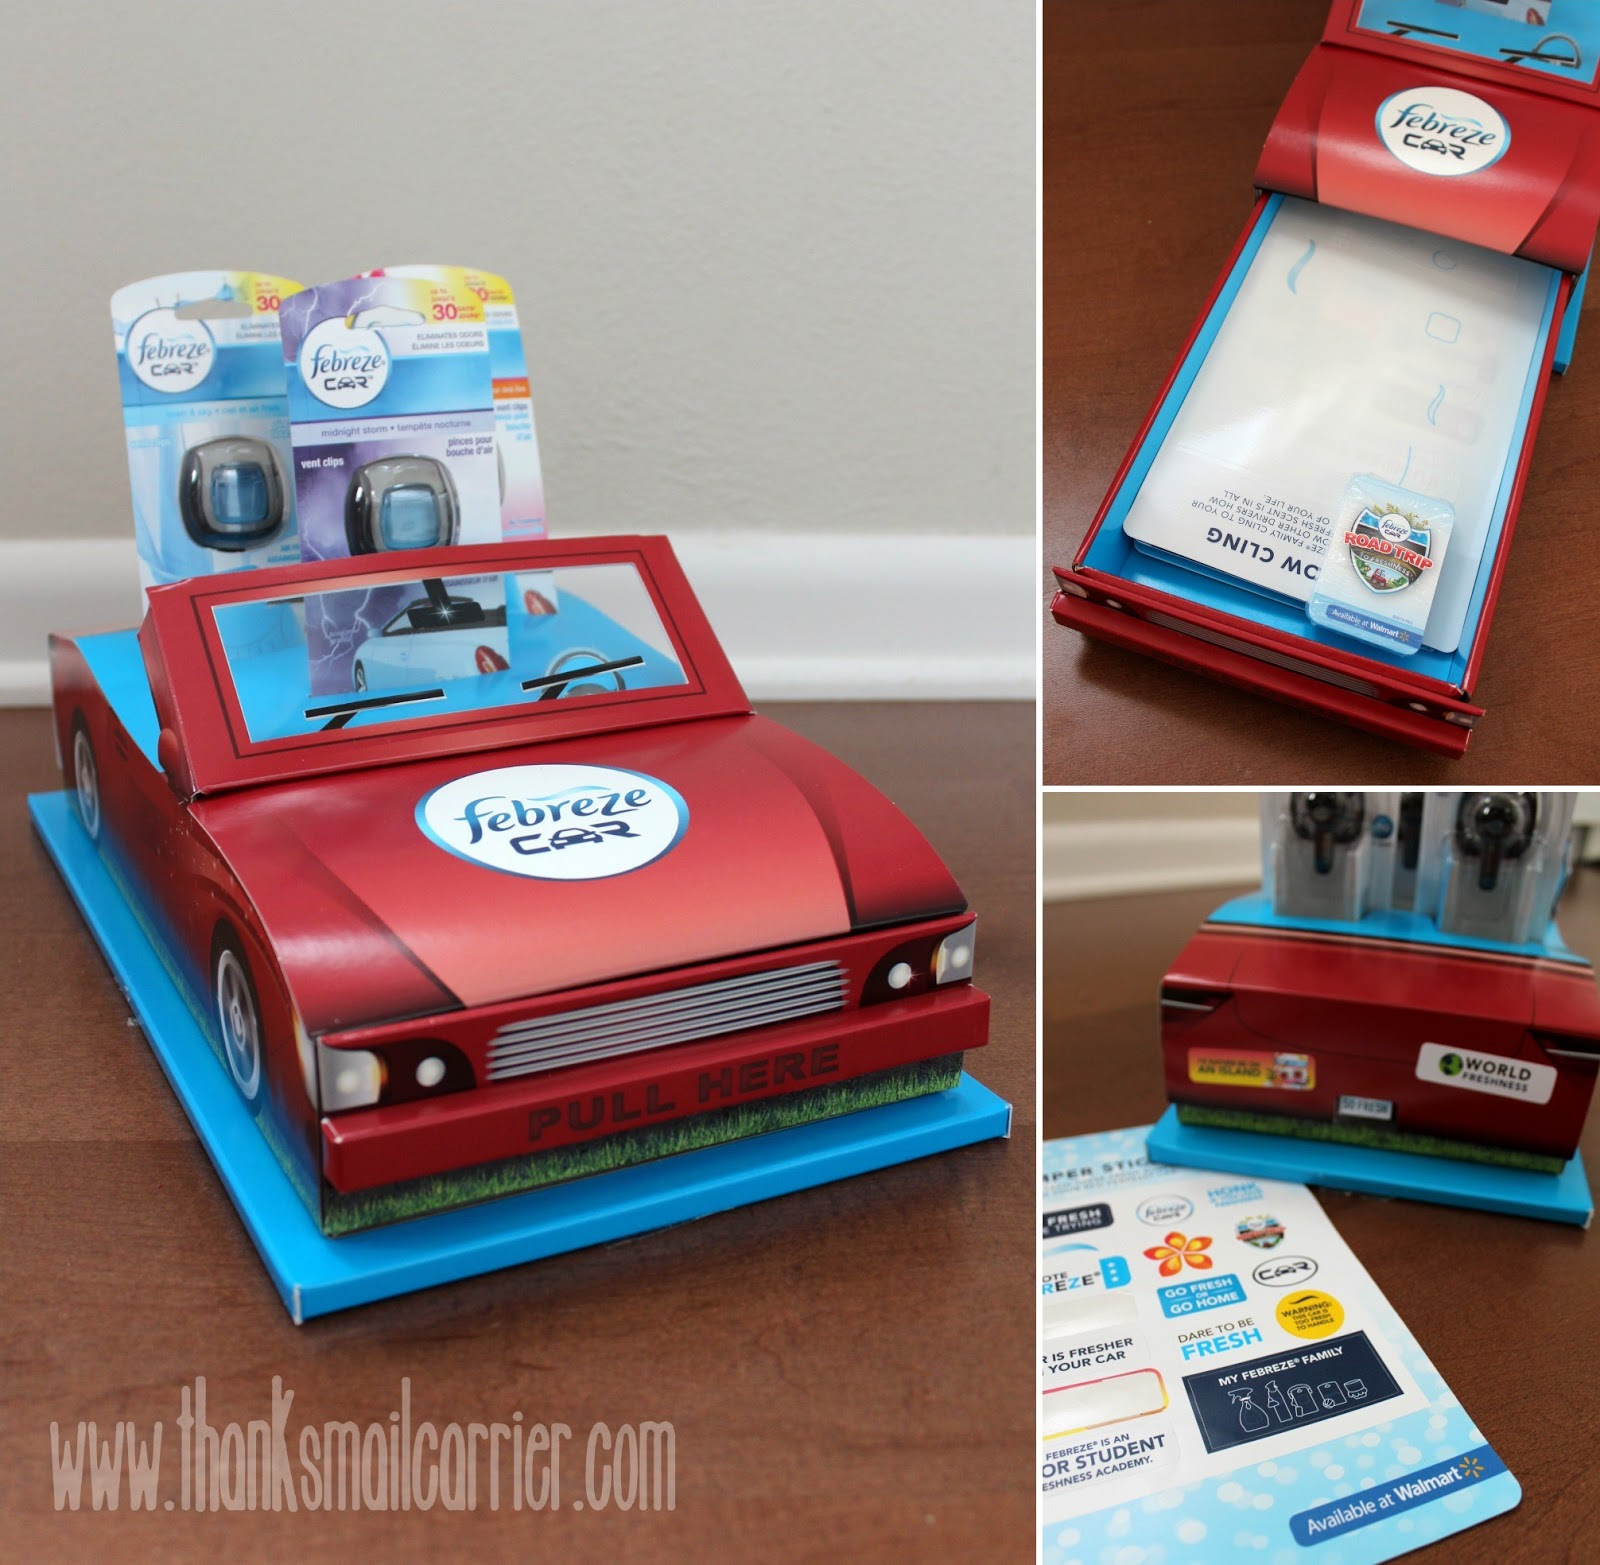 Febreze car products